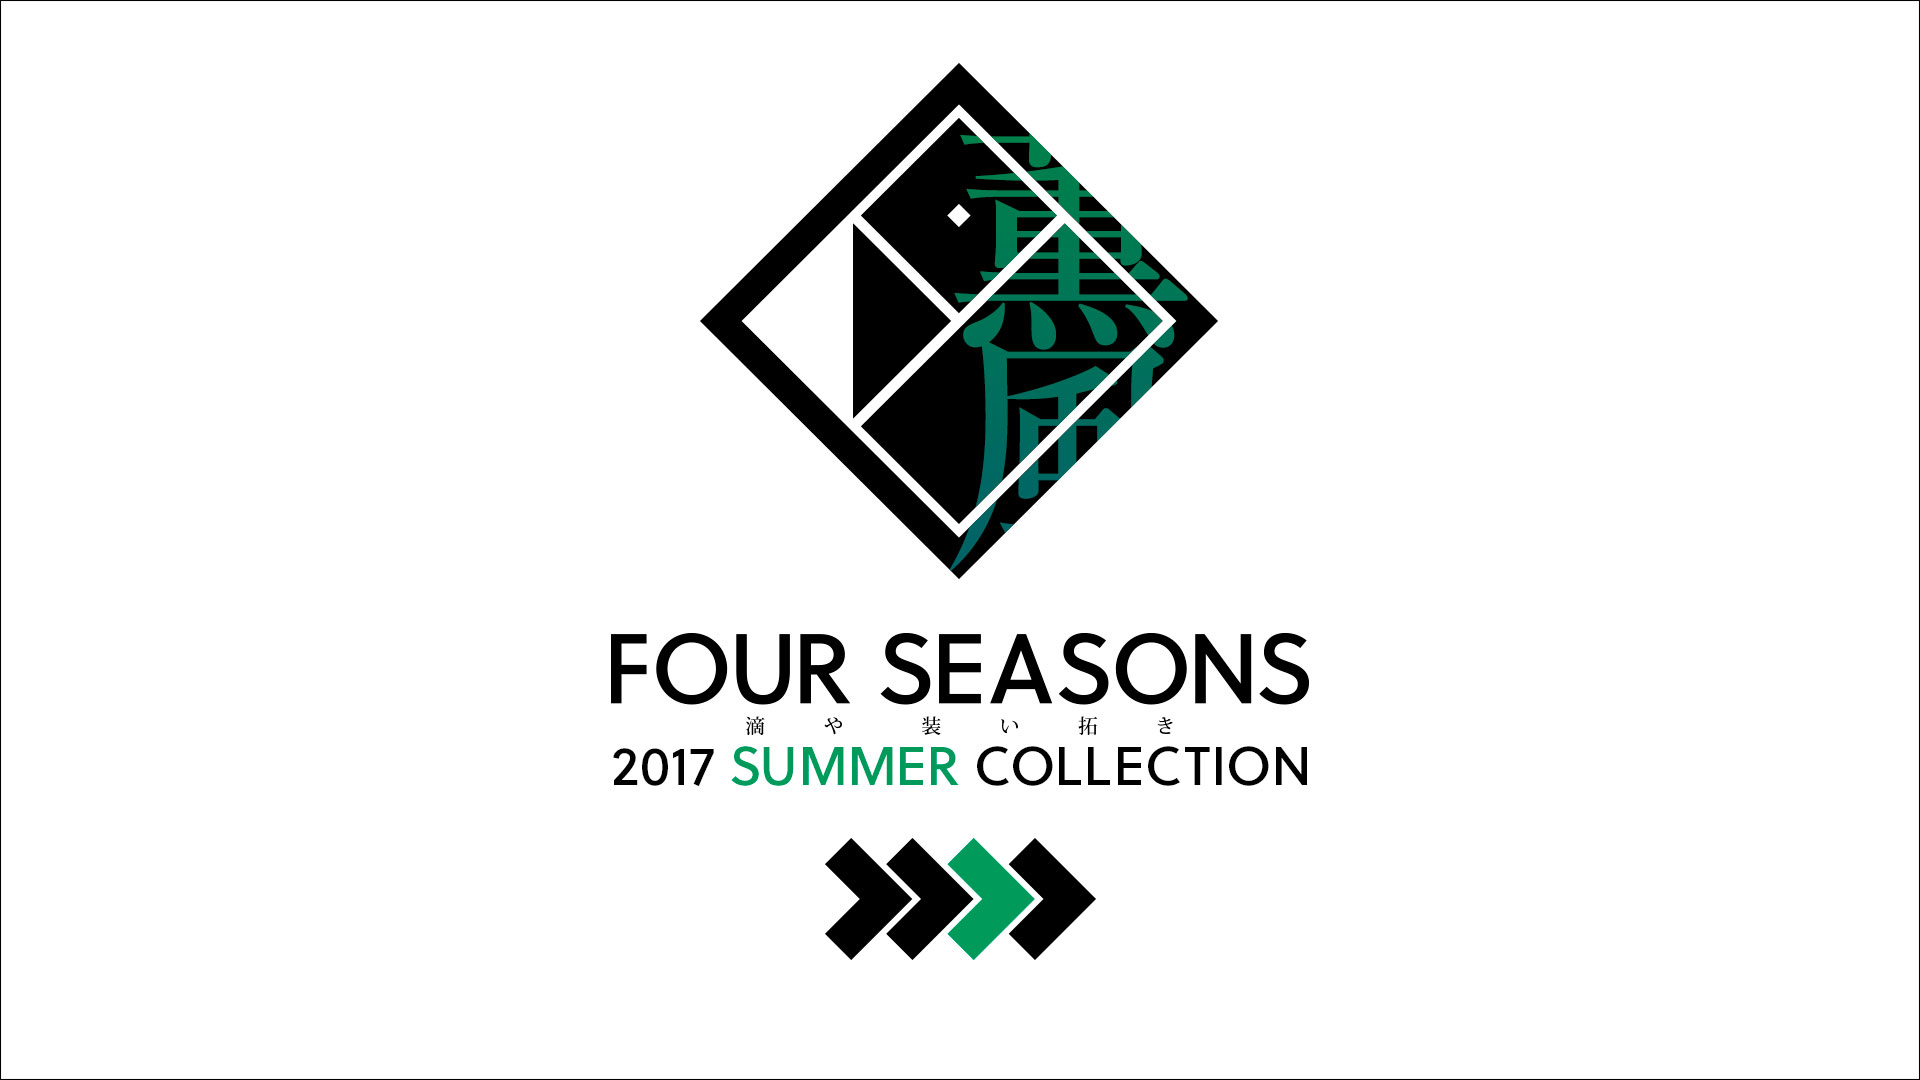 [PHOTO:FOUR SEASONS 2017 SUMMER COLLECTION]